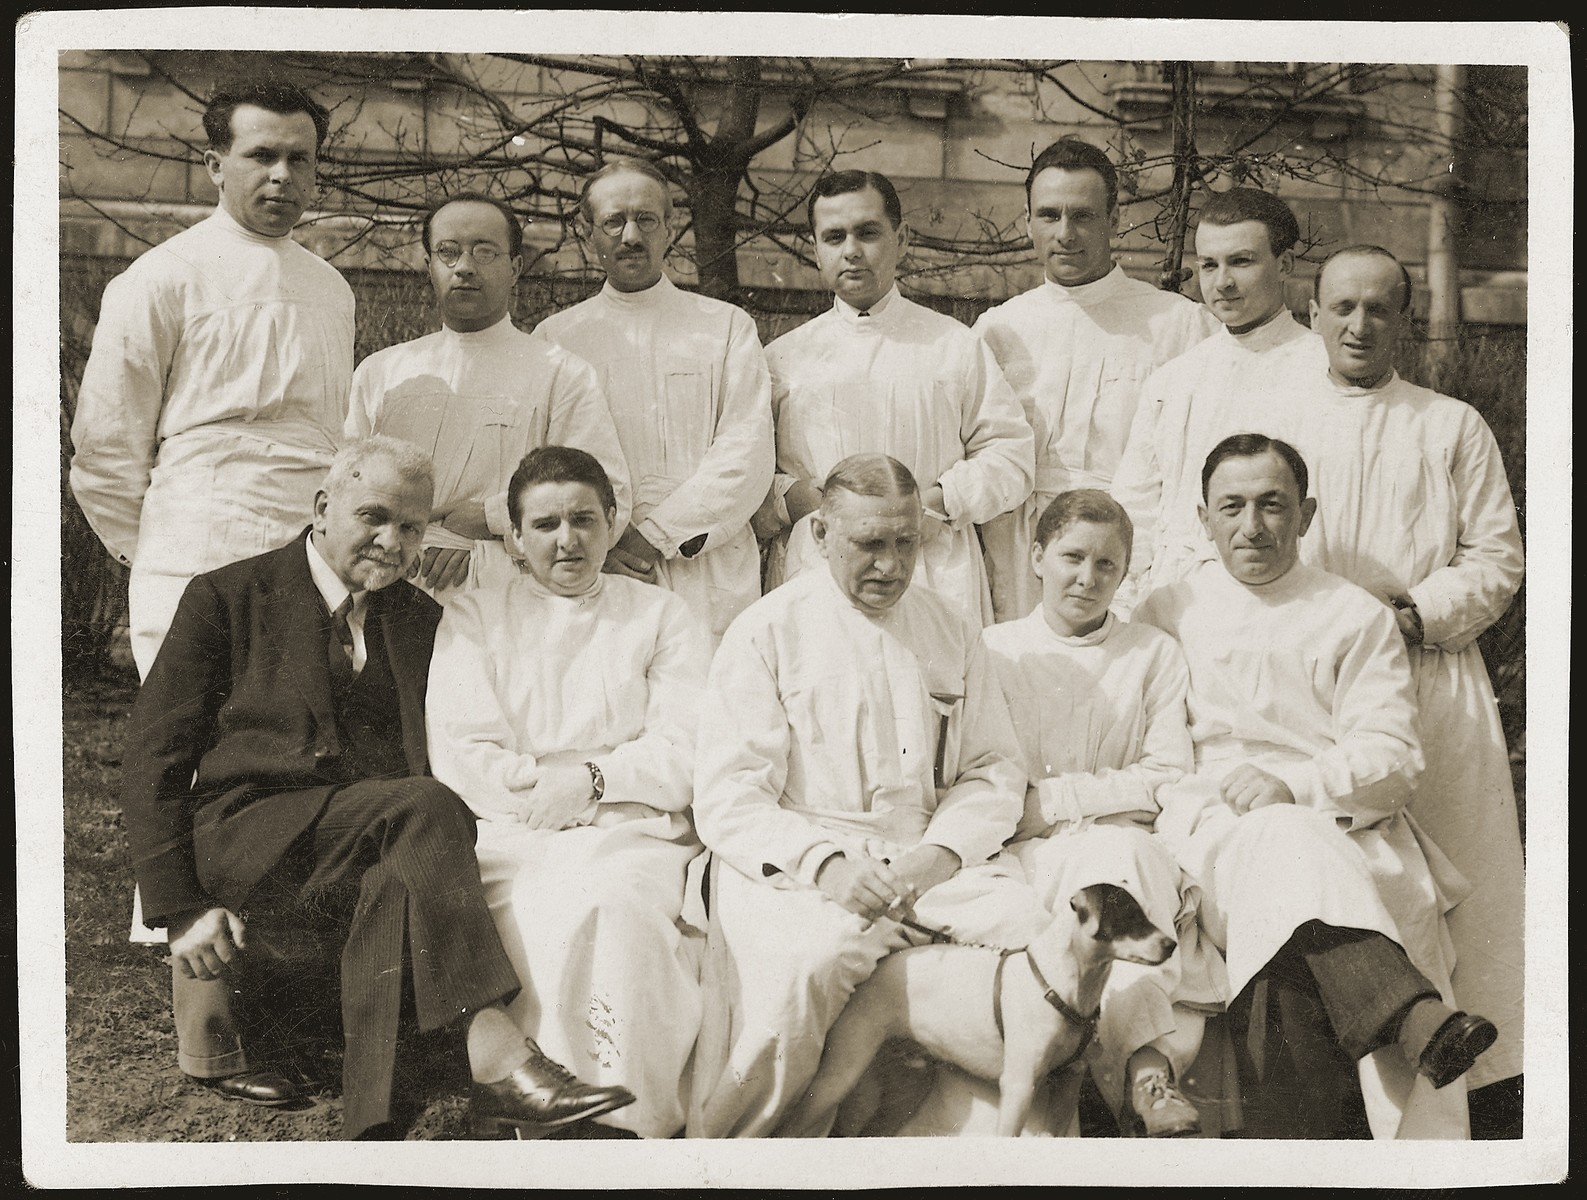 Group portrait of physicians in interwar Poland.